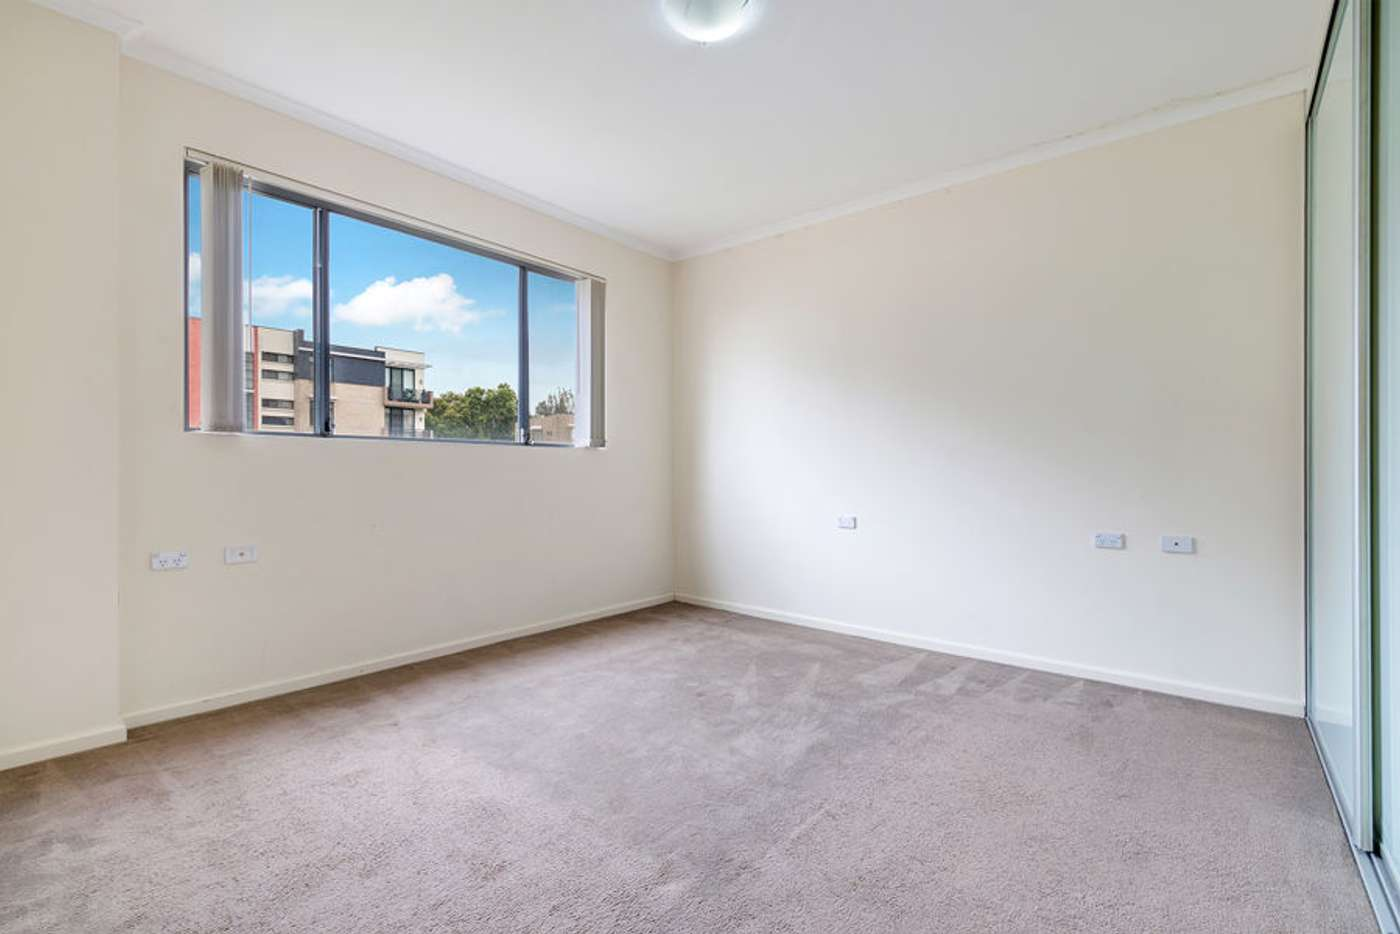 Fifth view of Homely apartment listing, 203B/.42-50 Brickworks Drive, Holroyd NSW 2142